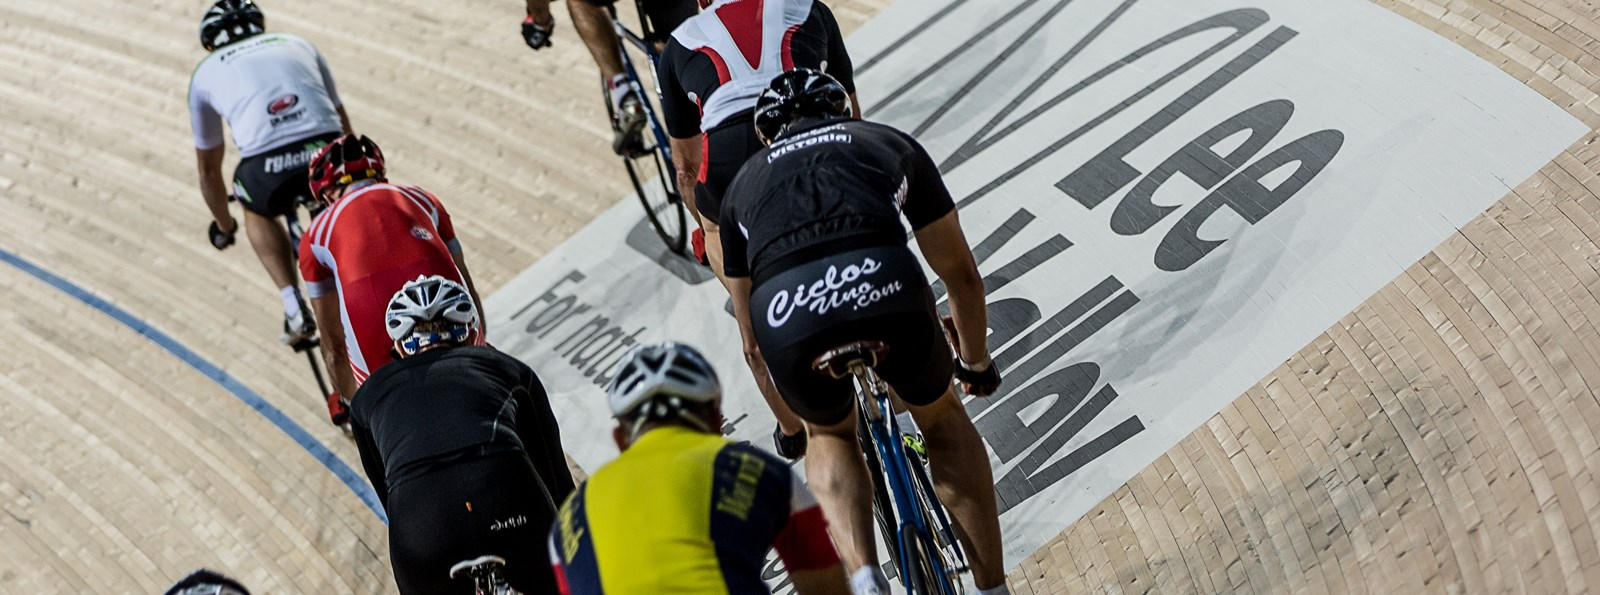 The Velodrome Experience - Guest Blog